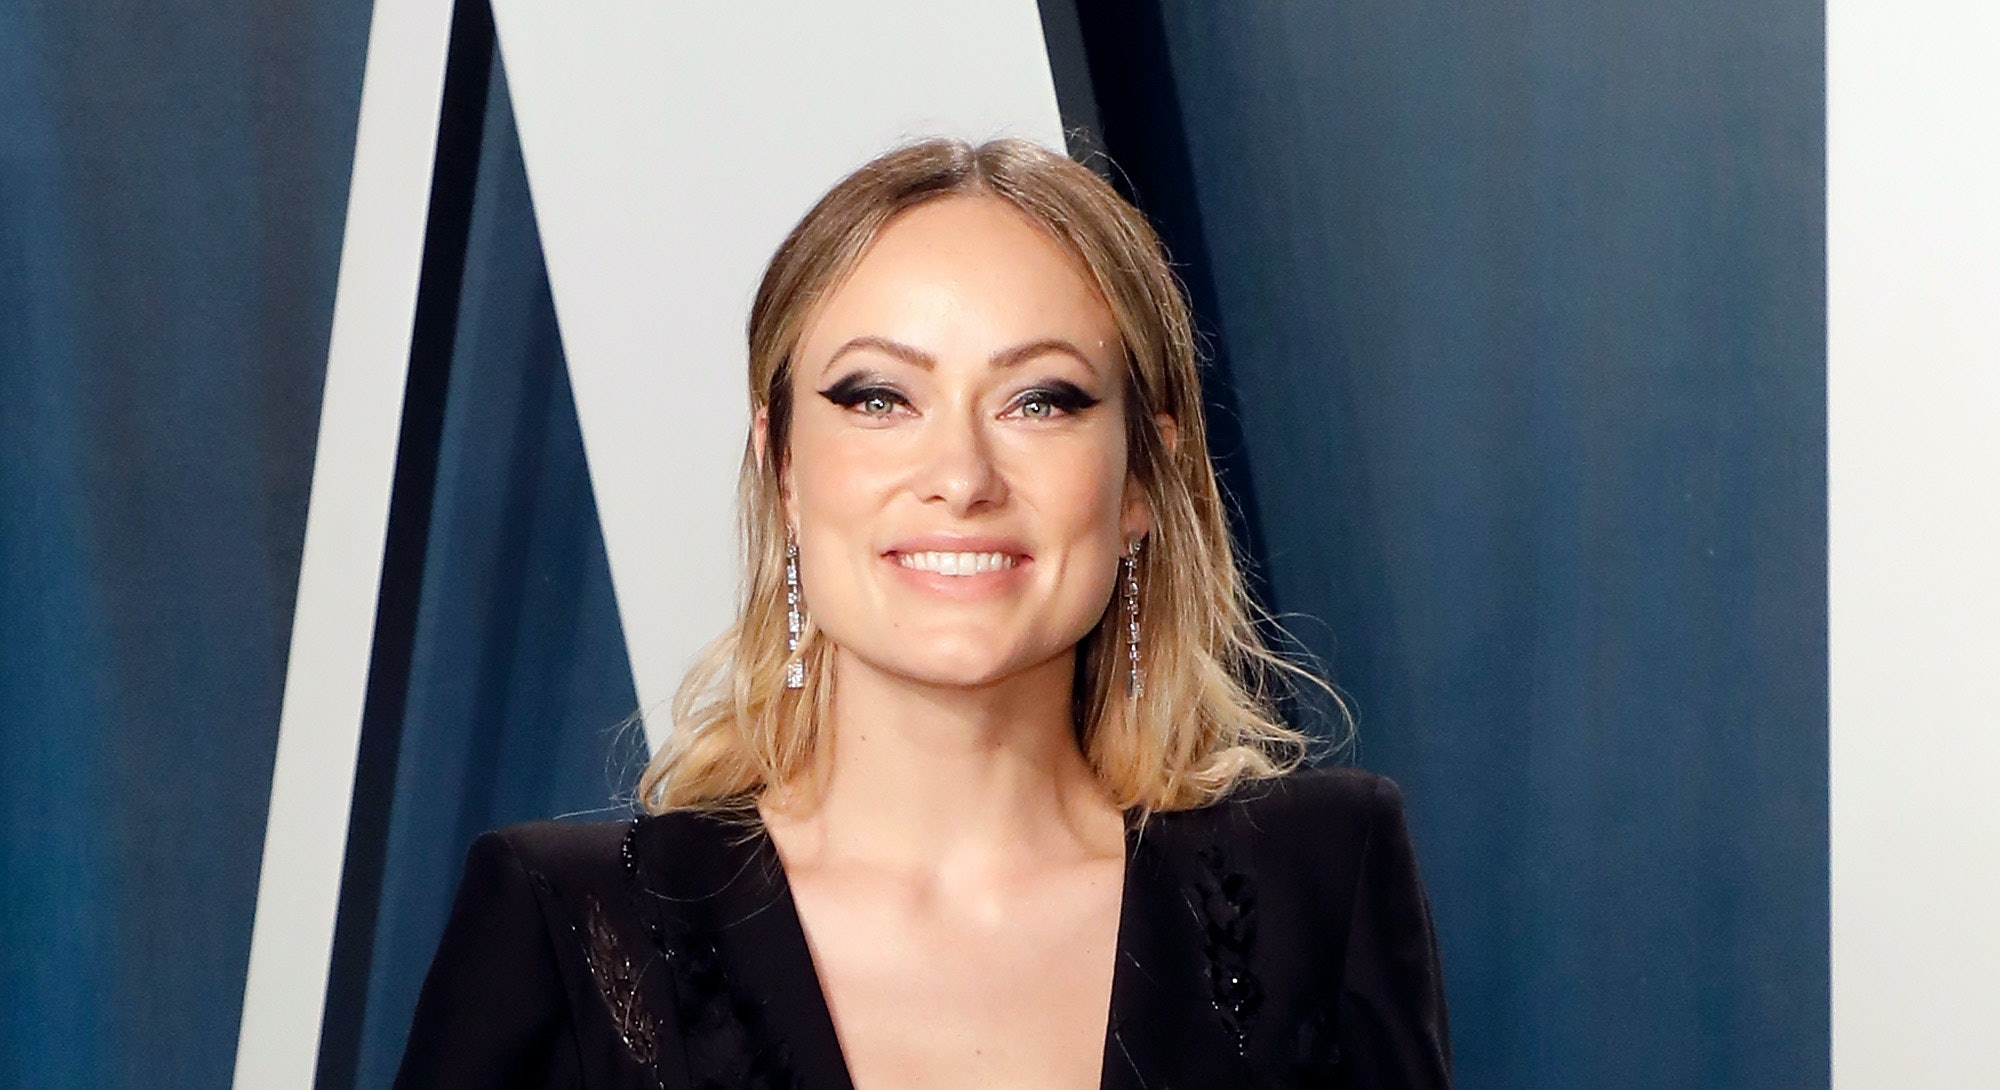 BEVERLY HILLS, CALIFORNIA - FEBRUARY 09: Olivia Wilde attends the 2020 Vanity Fair Oscar Party at Wa...